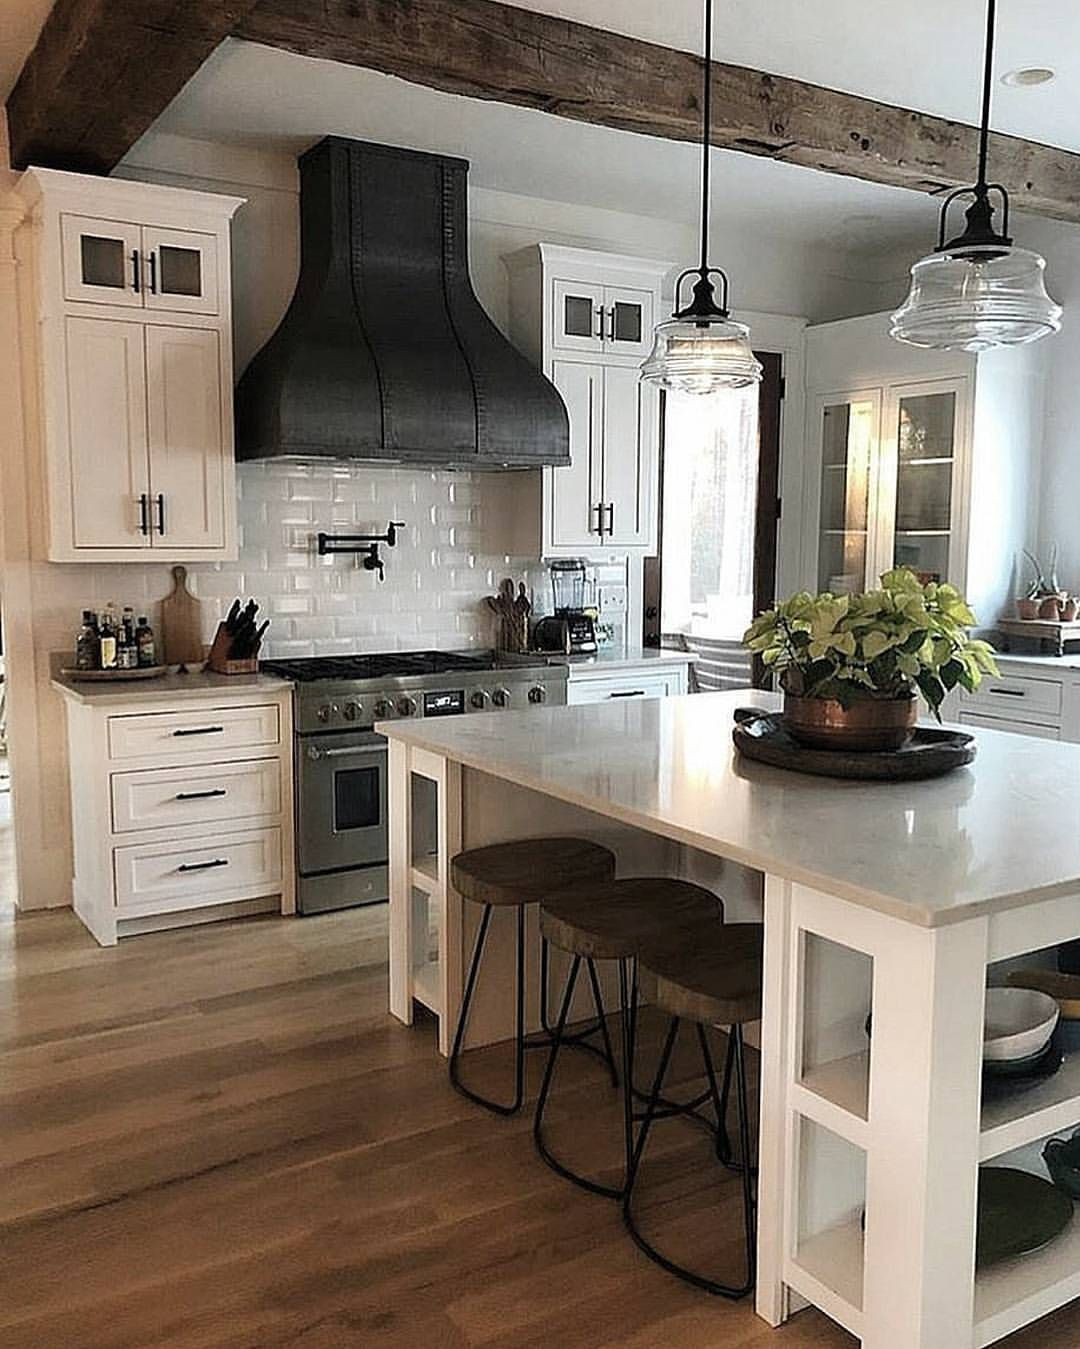 Pin by c dickes on contrast white kitchen in pinterest